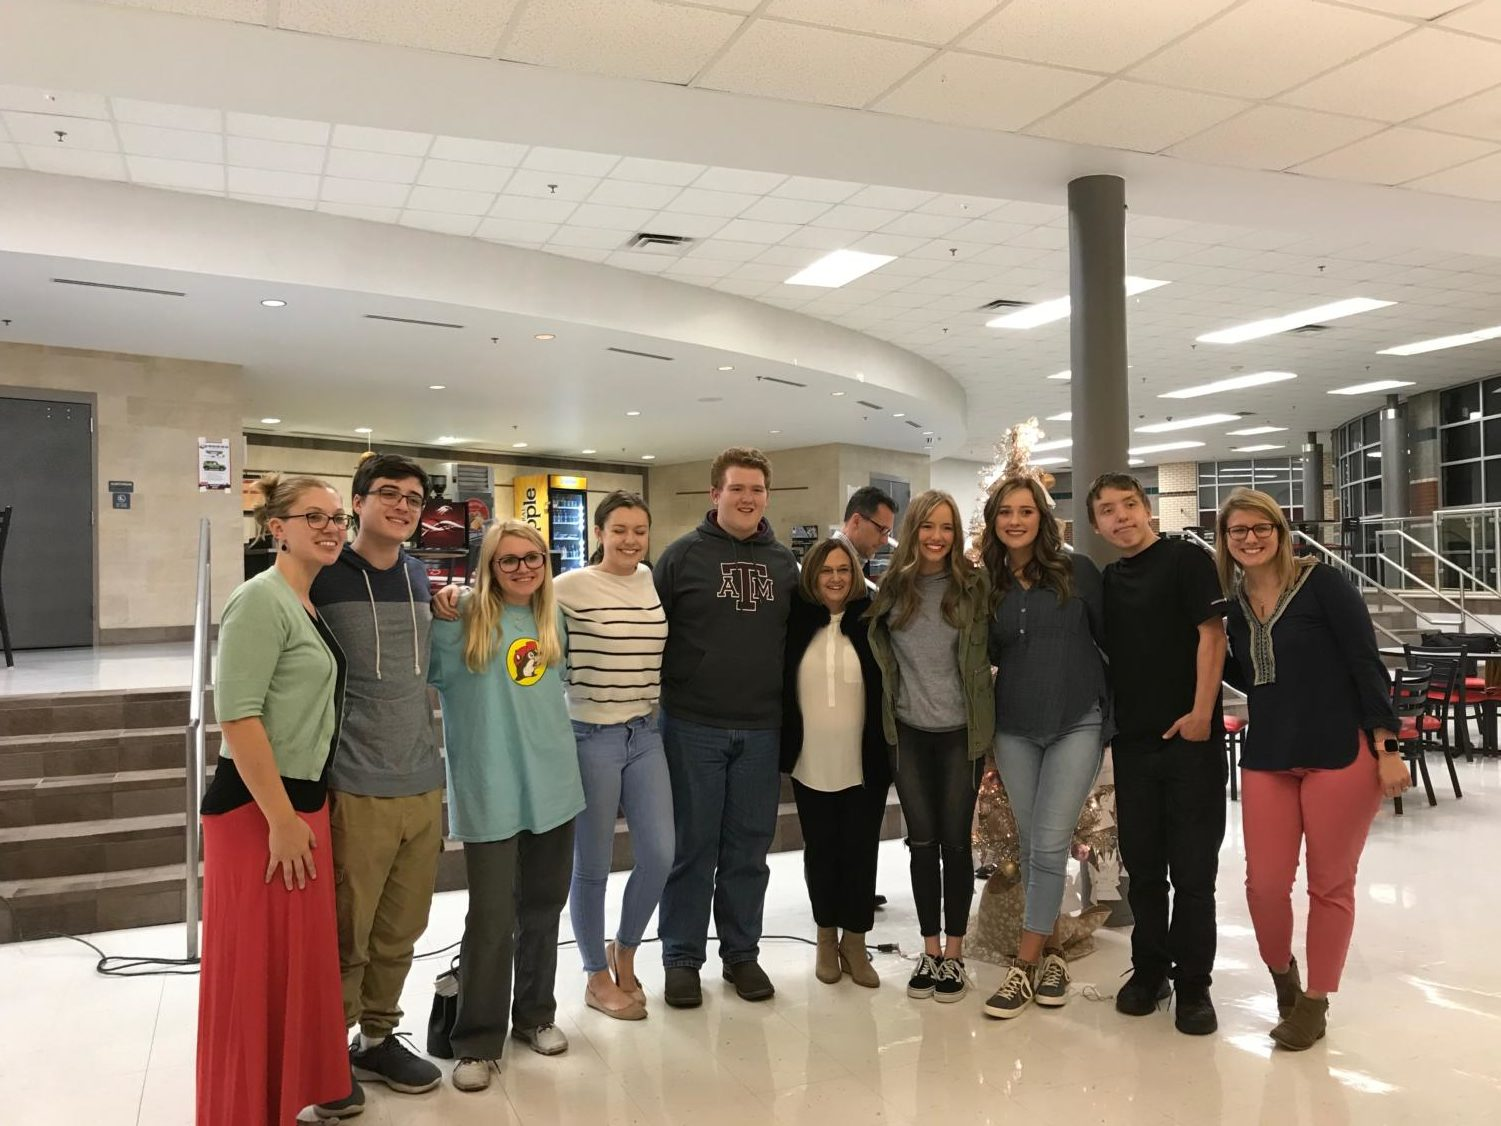 Argyle staff and students both participated in the angel tree. From left to right, they are Daina Hunt, Jefferson Arrington, Savannah Packebusch, Jaclyn Harris, Andrew Fritz, Telena Write, Carly Haynes, Lauren Metcalf, Billy Akos and Karley Pancake.